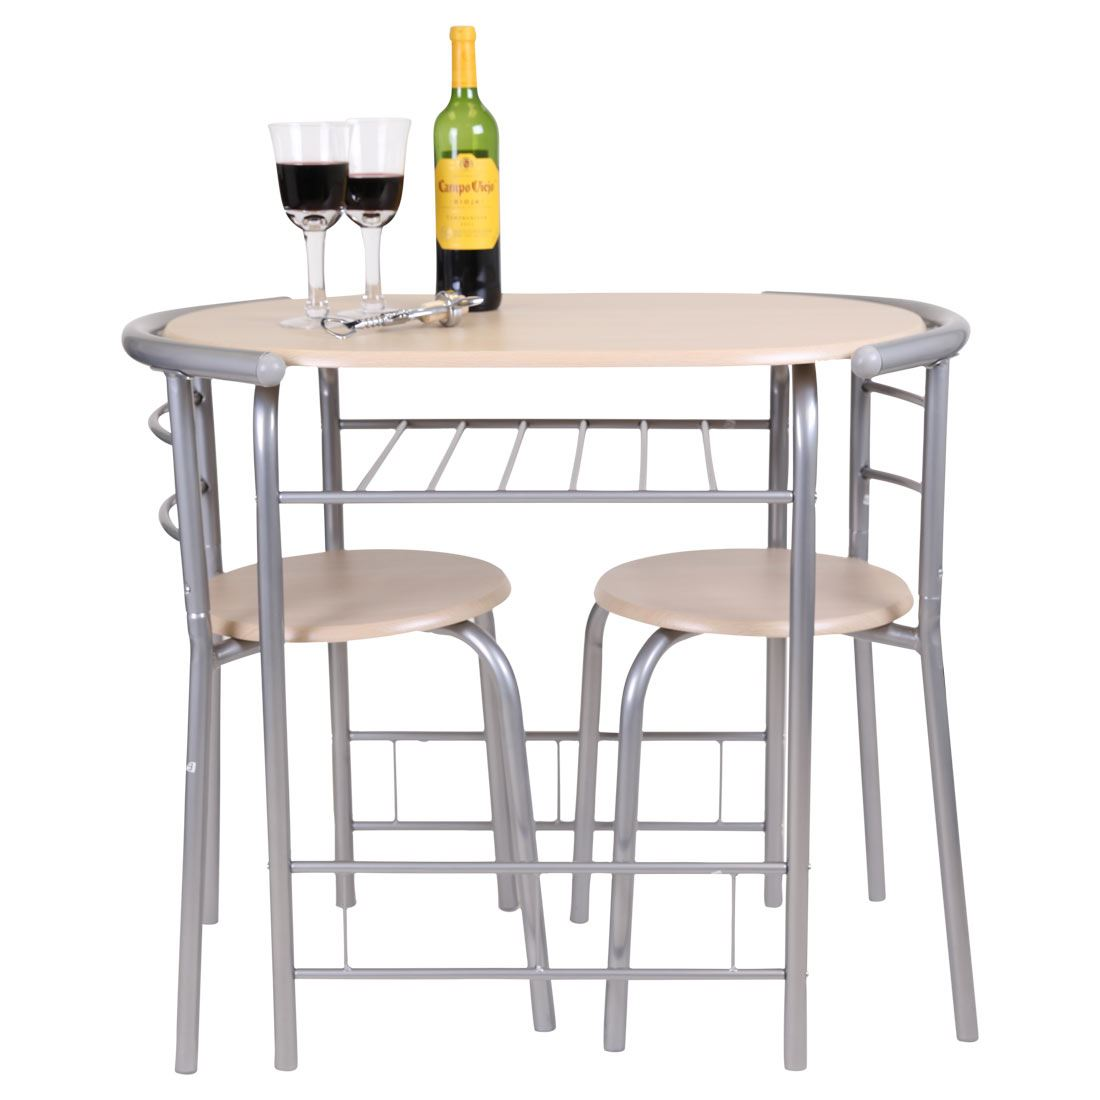 CHICAGO 3 PIECE DINING TABLE AND 2 CHAIR SET BREAKFAST  : 6a3b3024 e76d 4640 a51e db9685b43c4c from ebay.co.uk size 1100 x 1100 jpeg 70kB